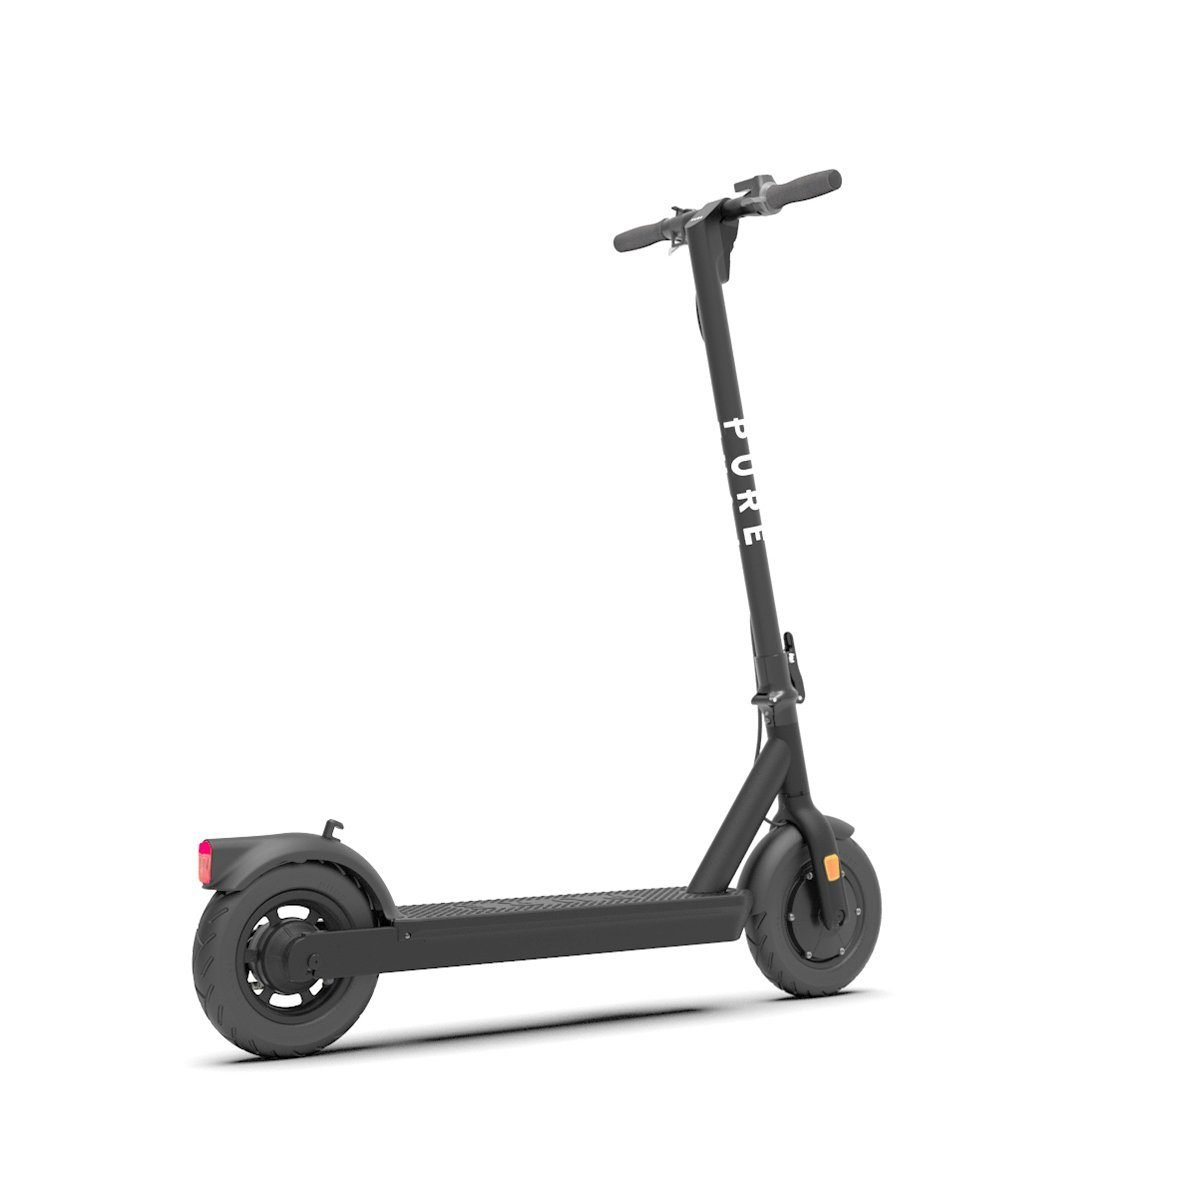 The Pure Air Pro is considered one of the best electric scooters out.